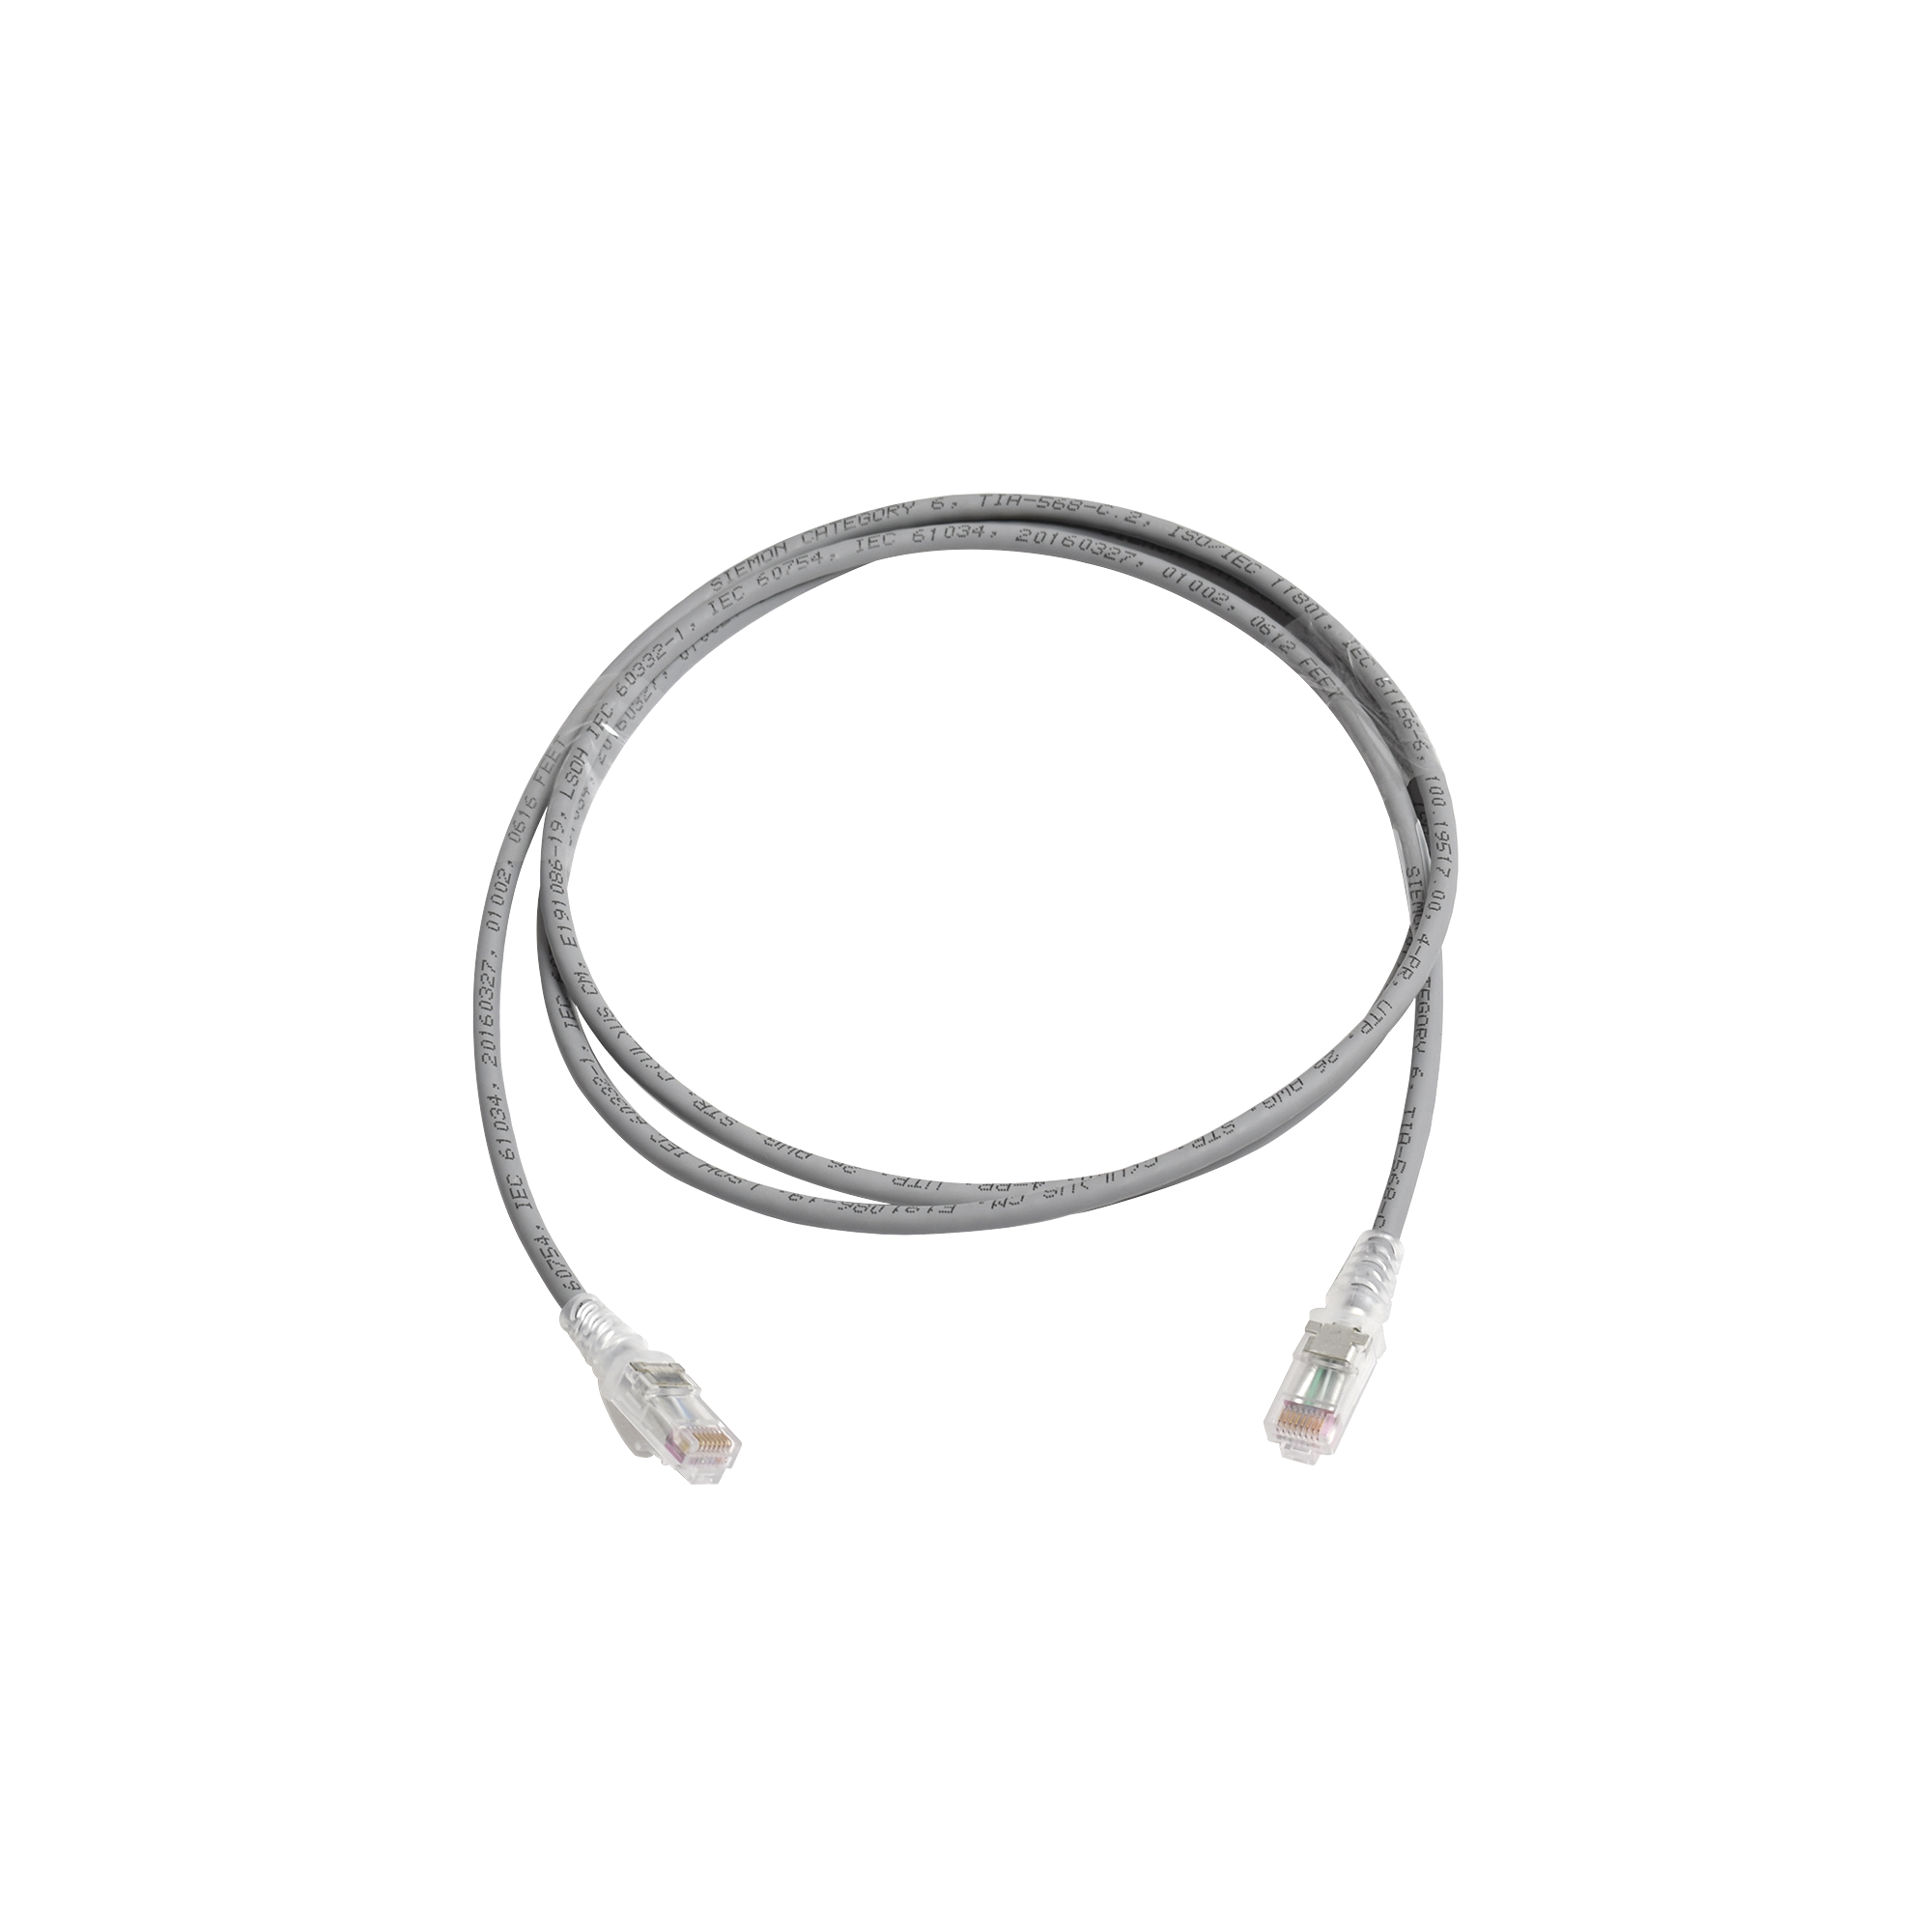 Patch Cord MC6 Modular Cat6 UTP, CM/LS0H, 5ft, Color Gris